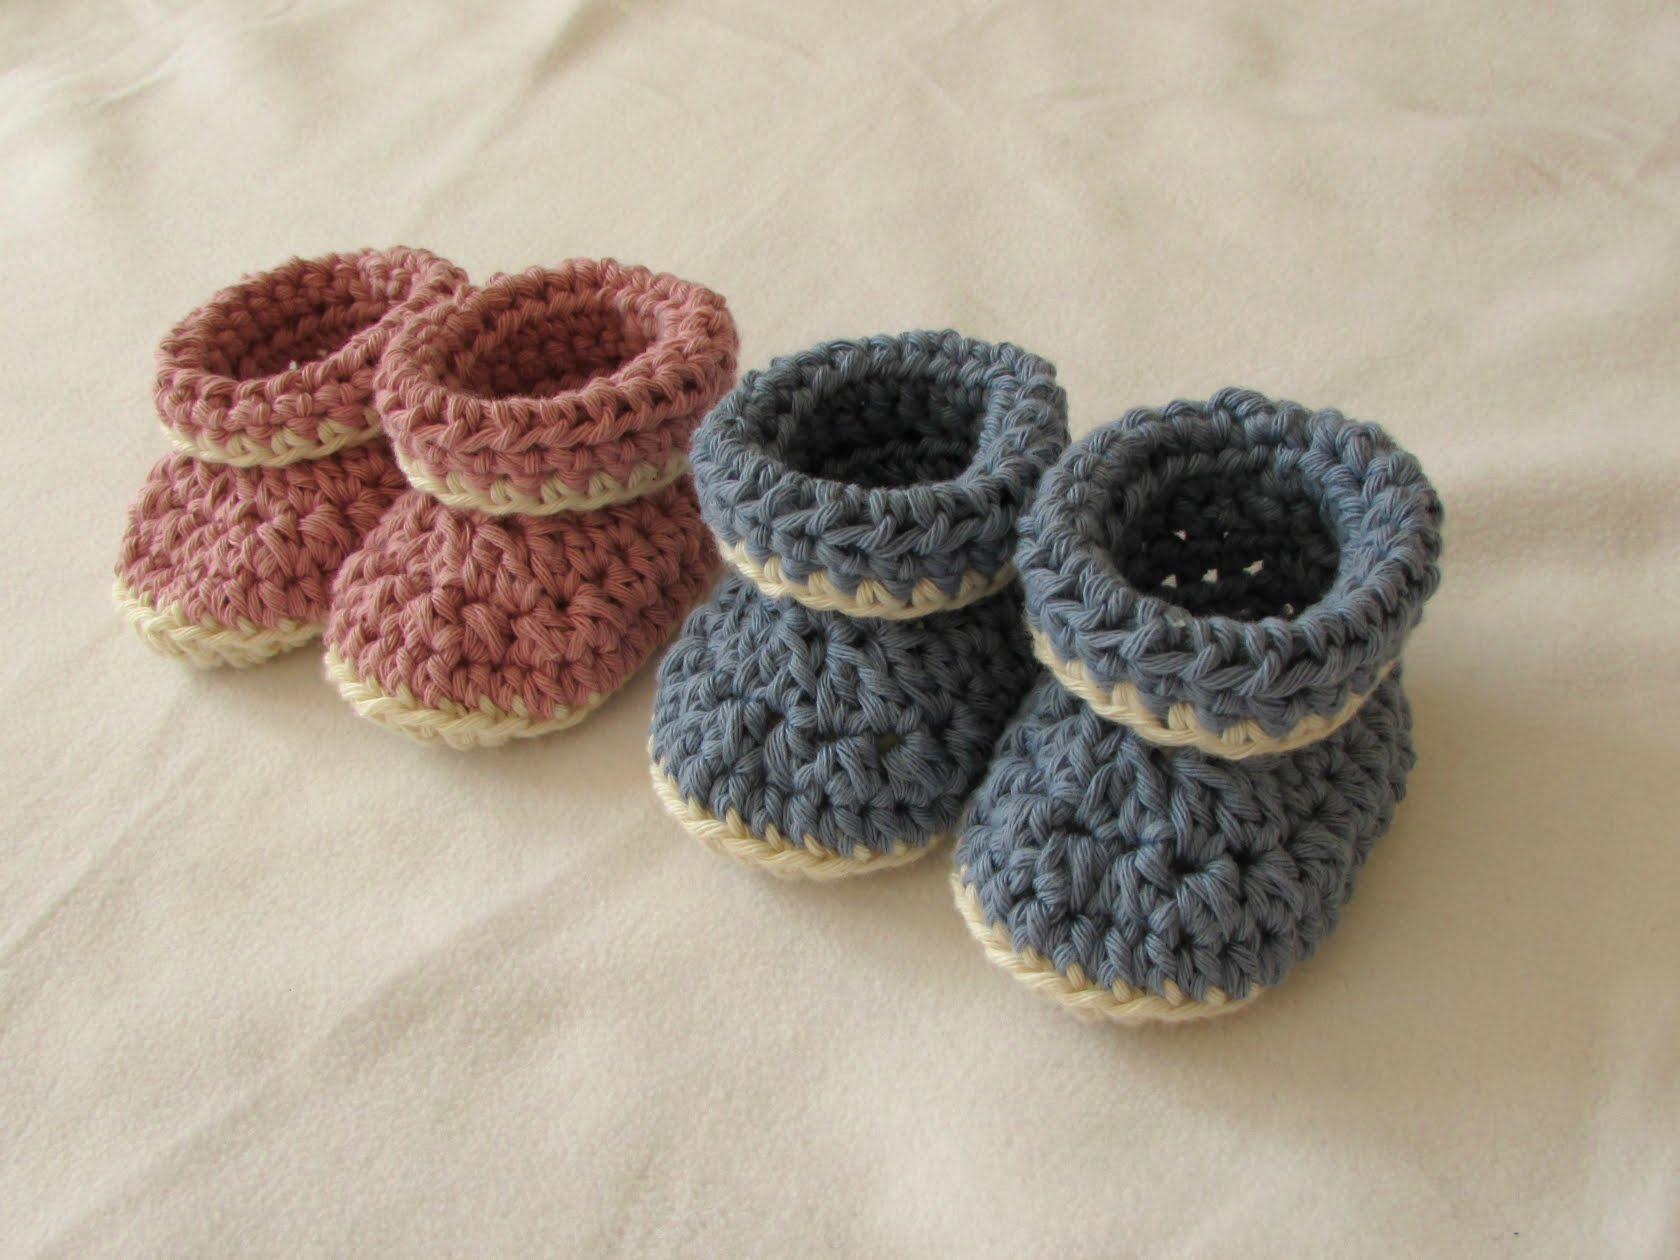 easy crochet baby booties very easy crochet cuffed baby booties tutorial - roll top baby shoes for  beginners JTMKTMC